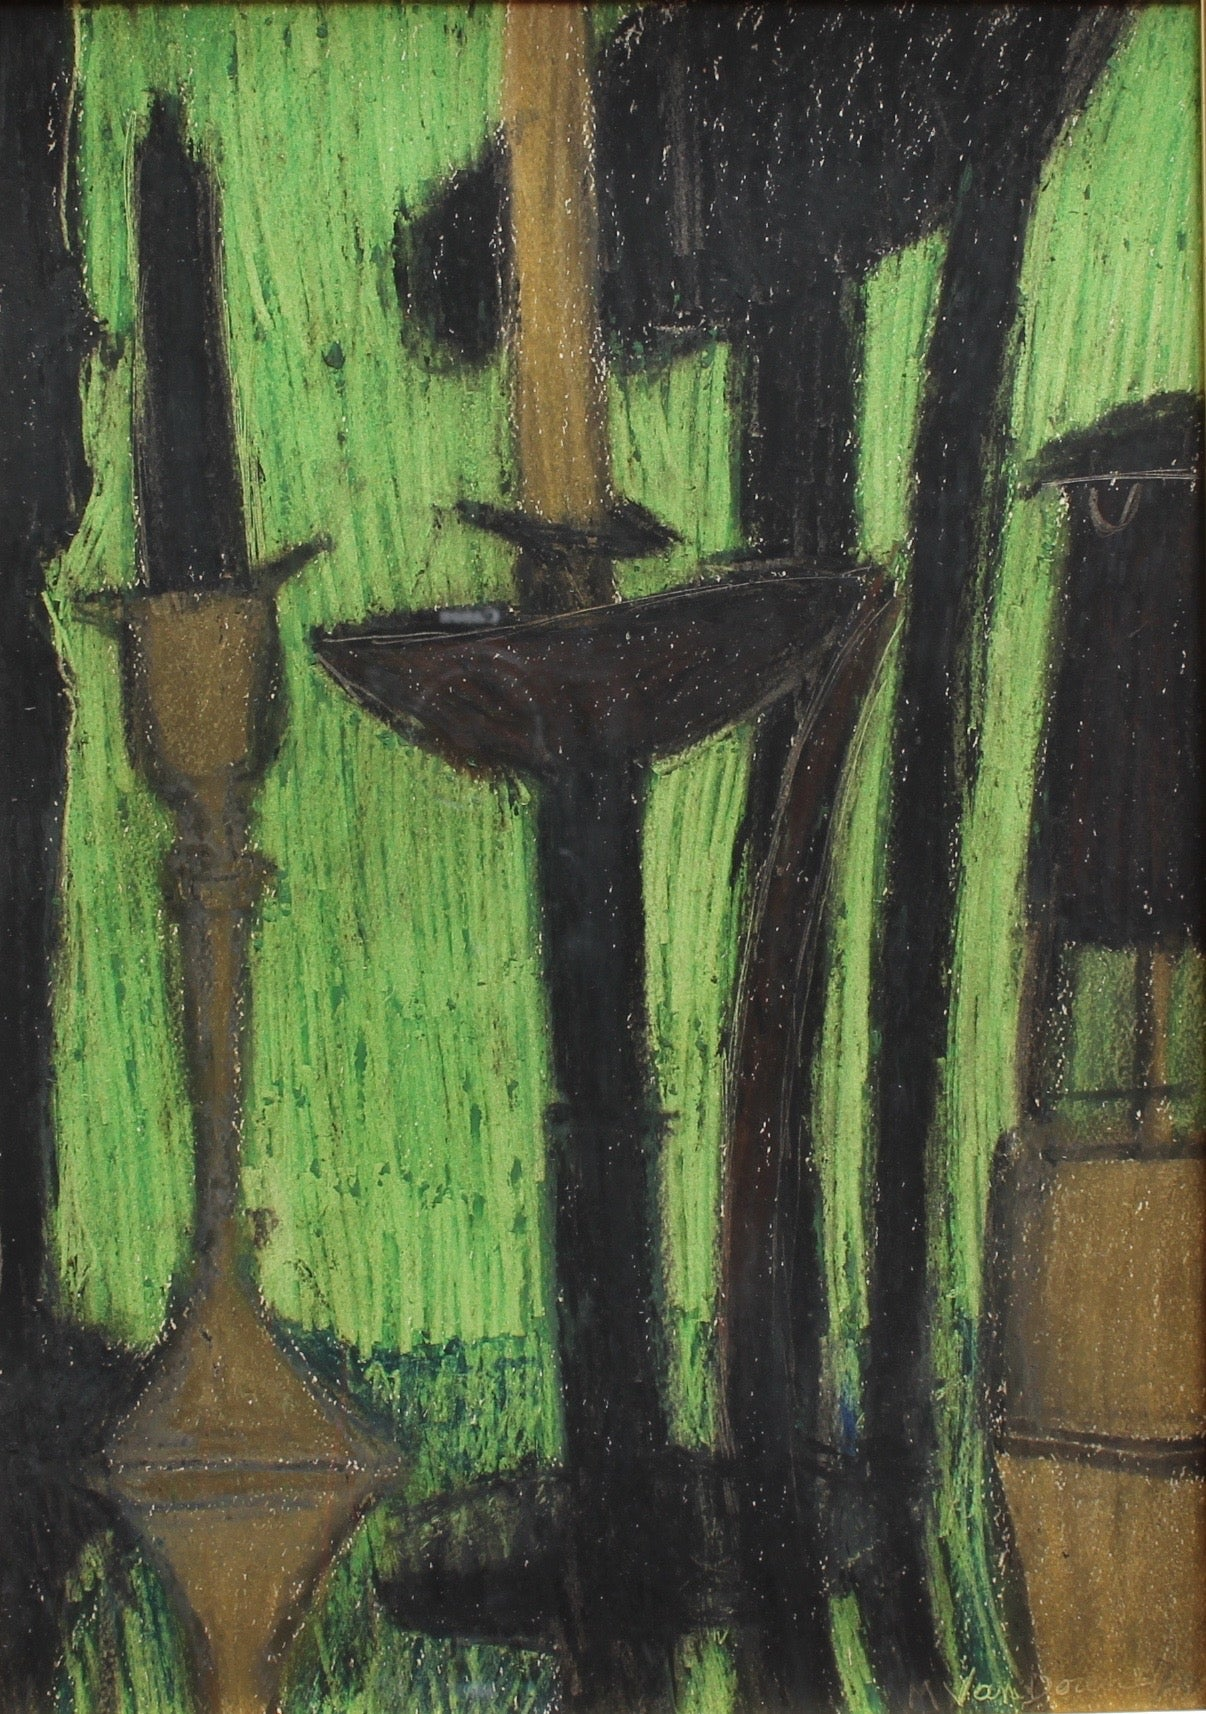 'Candles in Pastel' by M. Van Doren (1970)